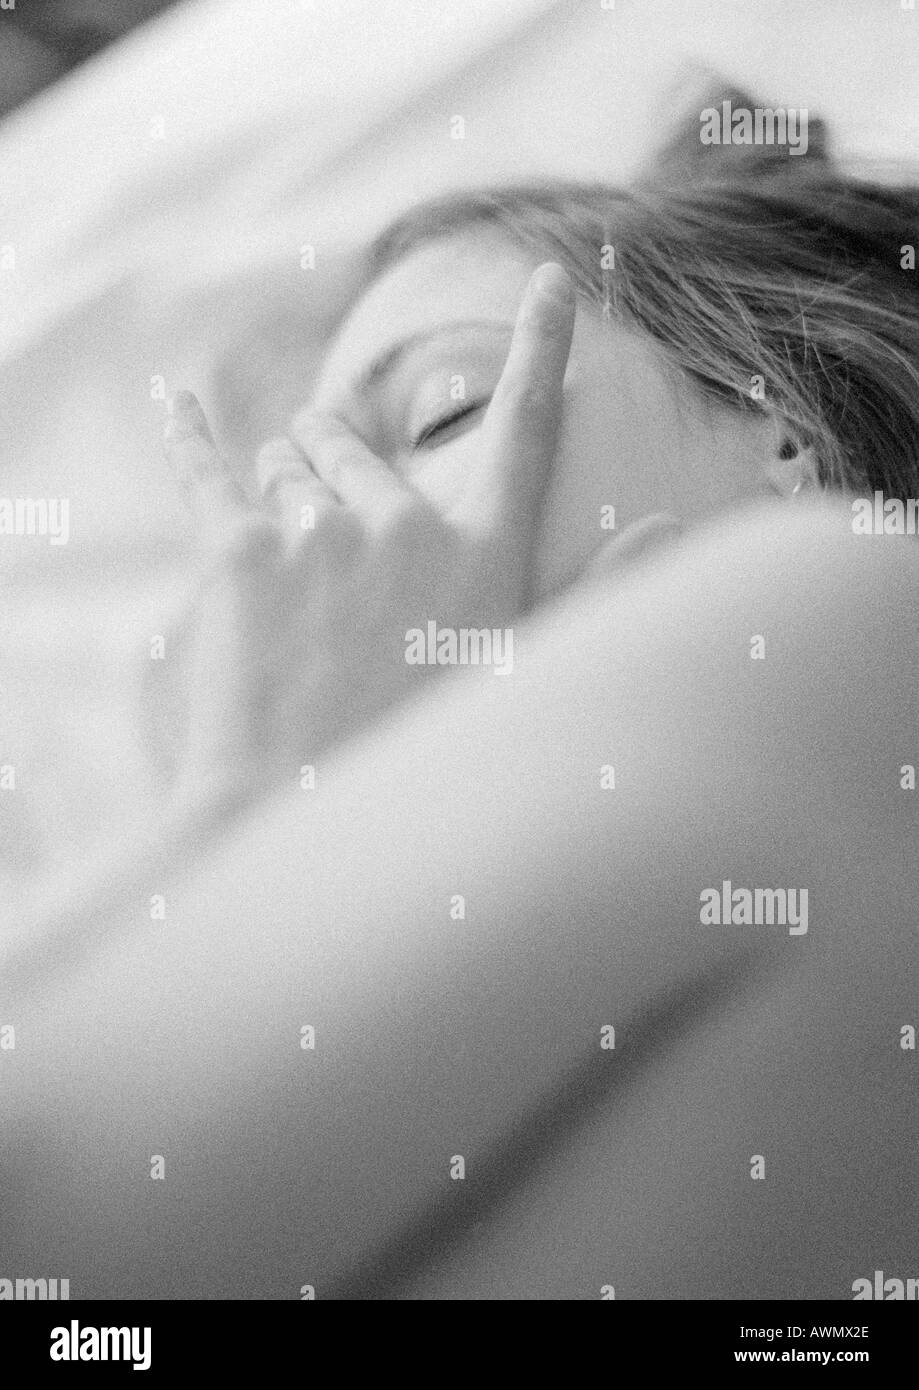 Woman lying on bed, touching face, close-up, black and white - Stock Image